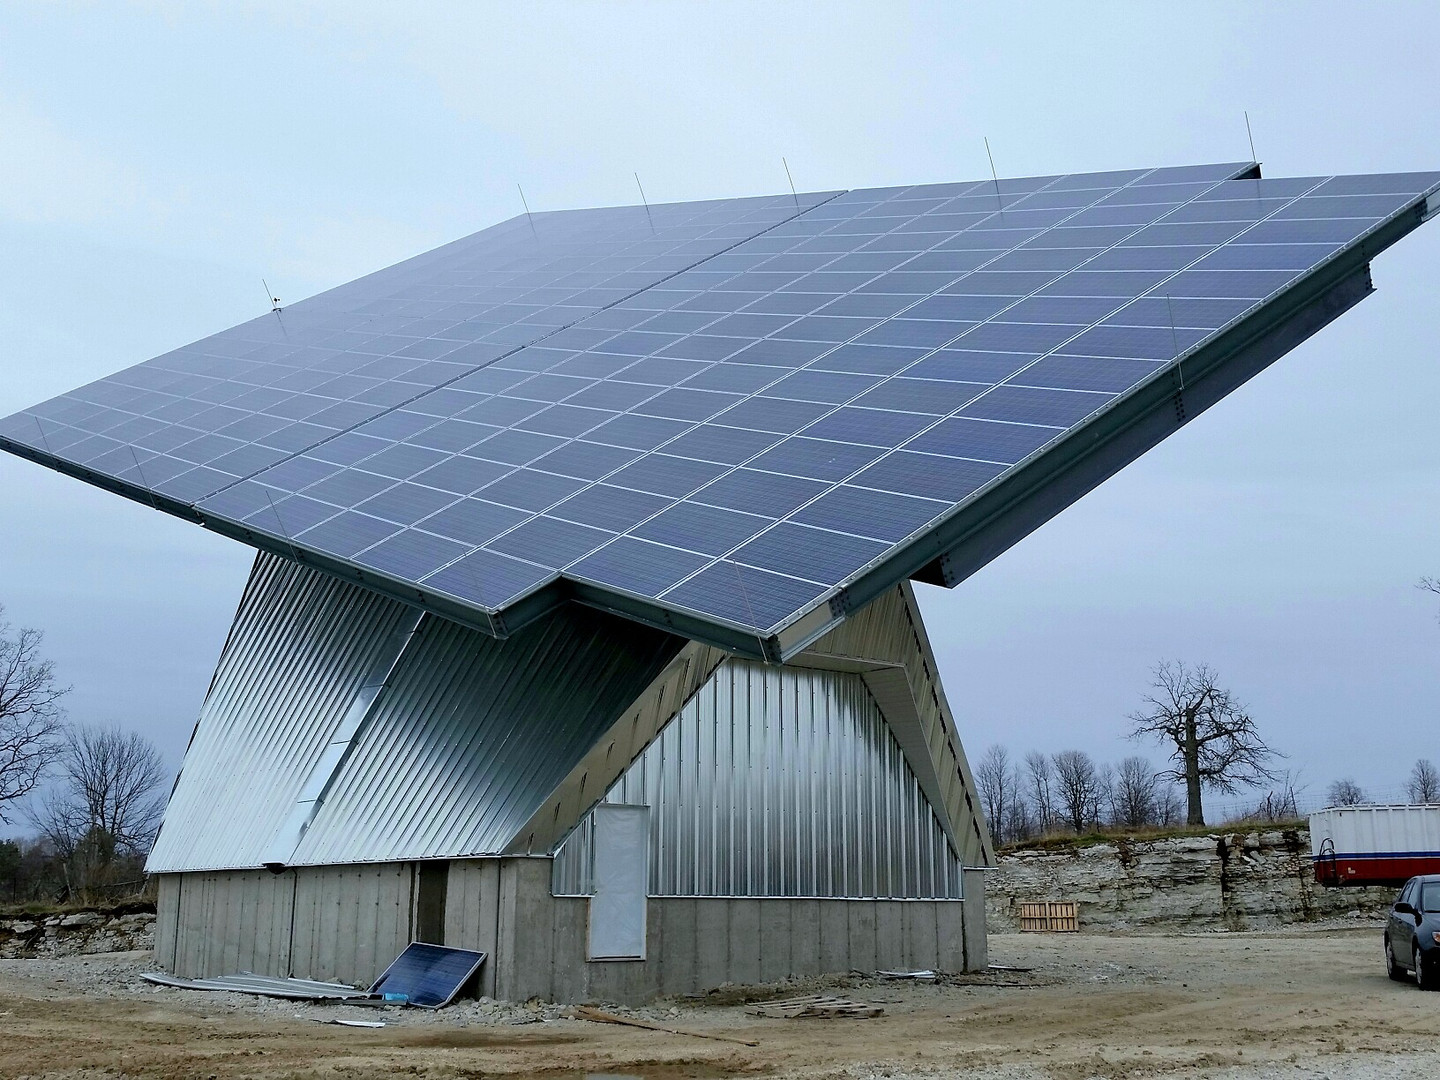 Solar House completed structure